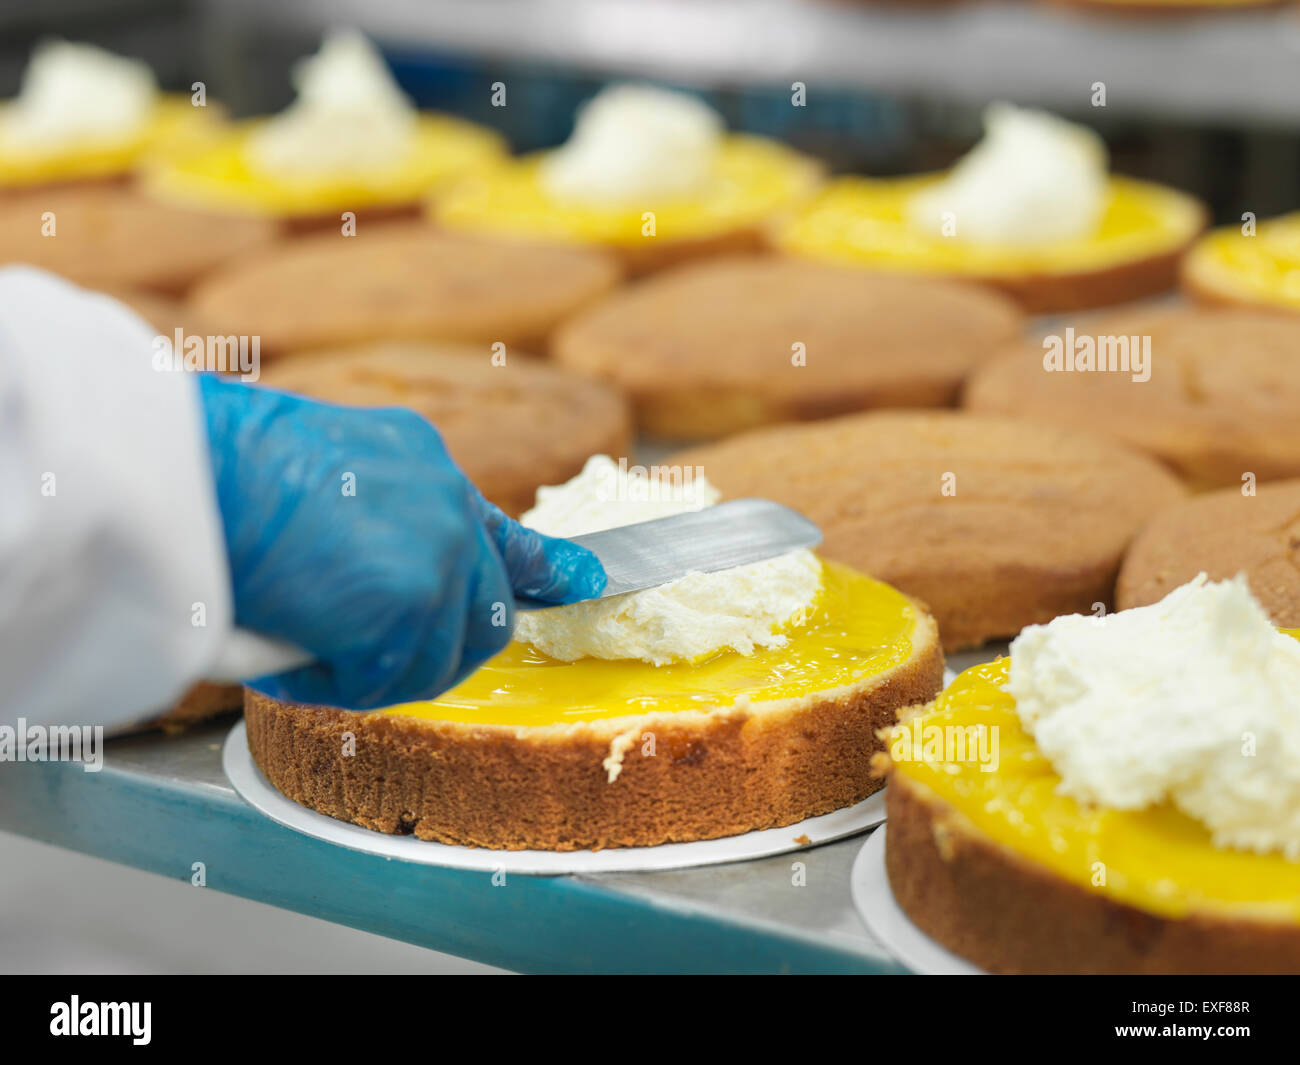 Female worker spreading filling on cakes in cake factory, close up - Stock Image